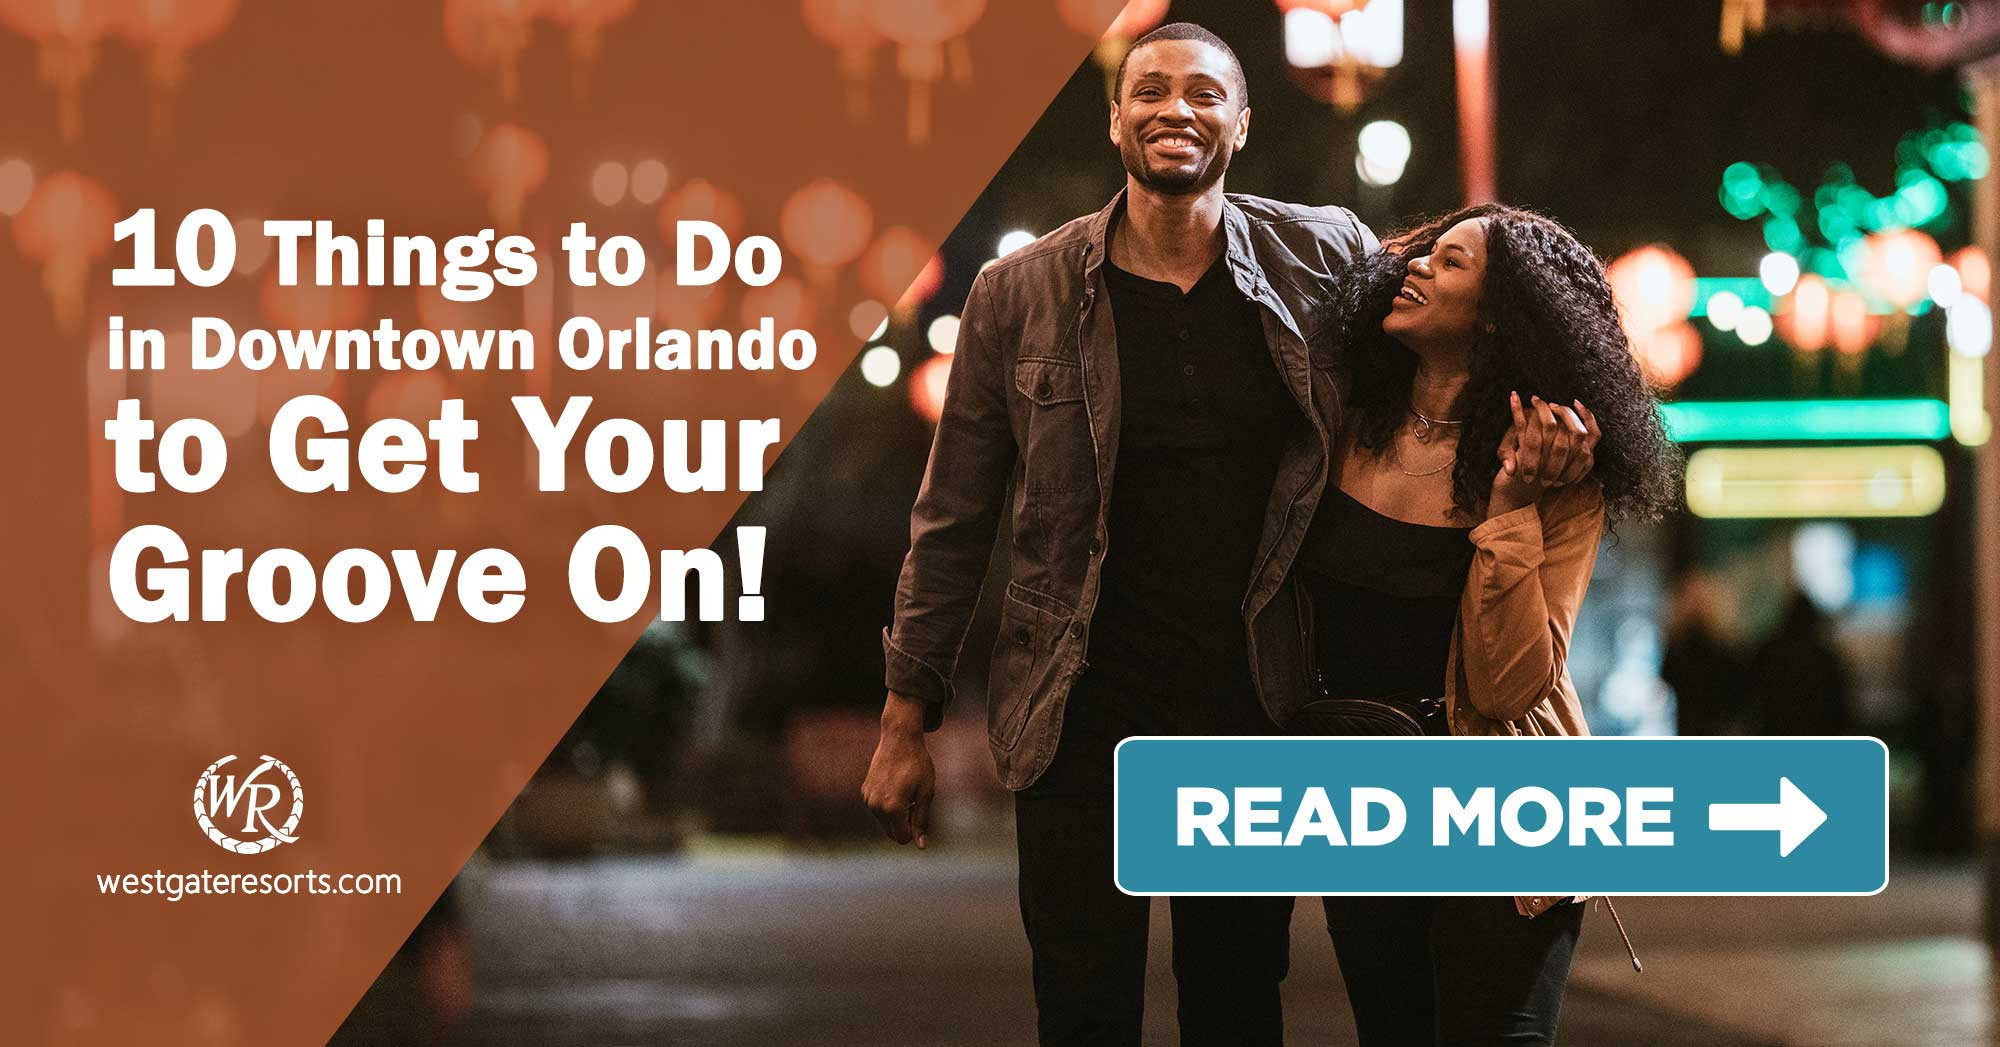 10 Things to Do in Downtown Orlando to Get Your Groove On!